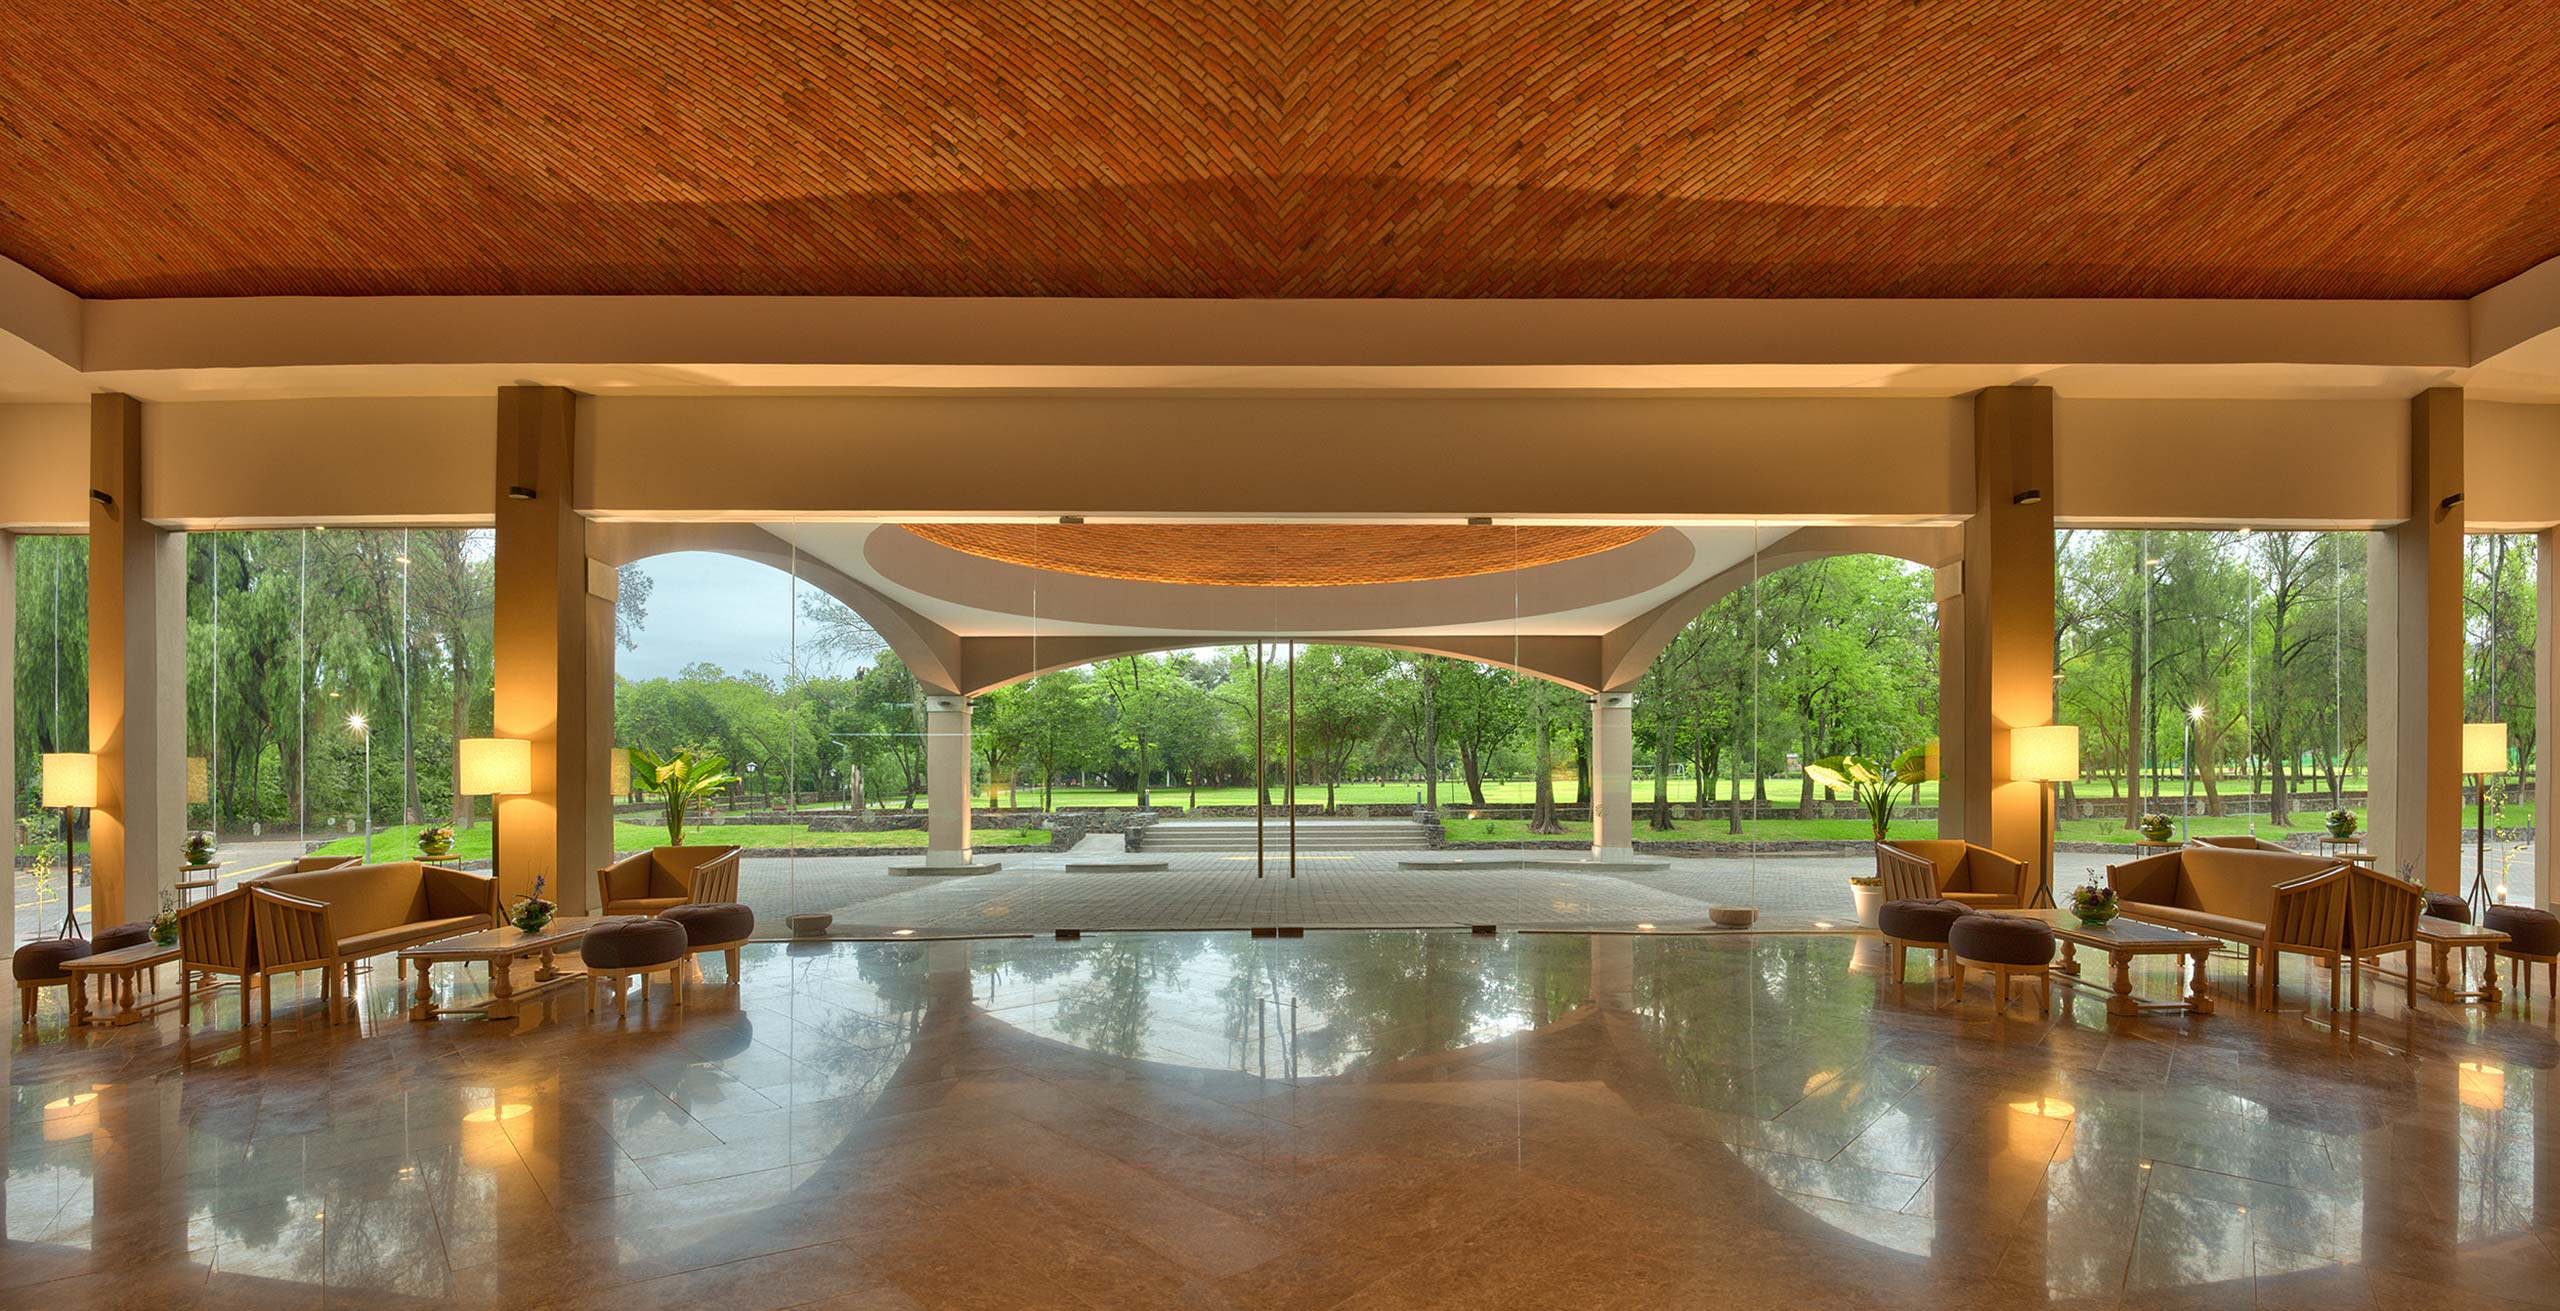 conference entrance in Hotel Hacienda Jurica by Brisas Queretaro